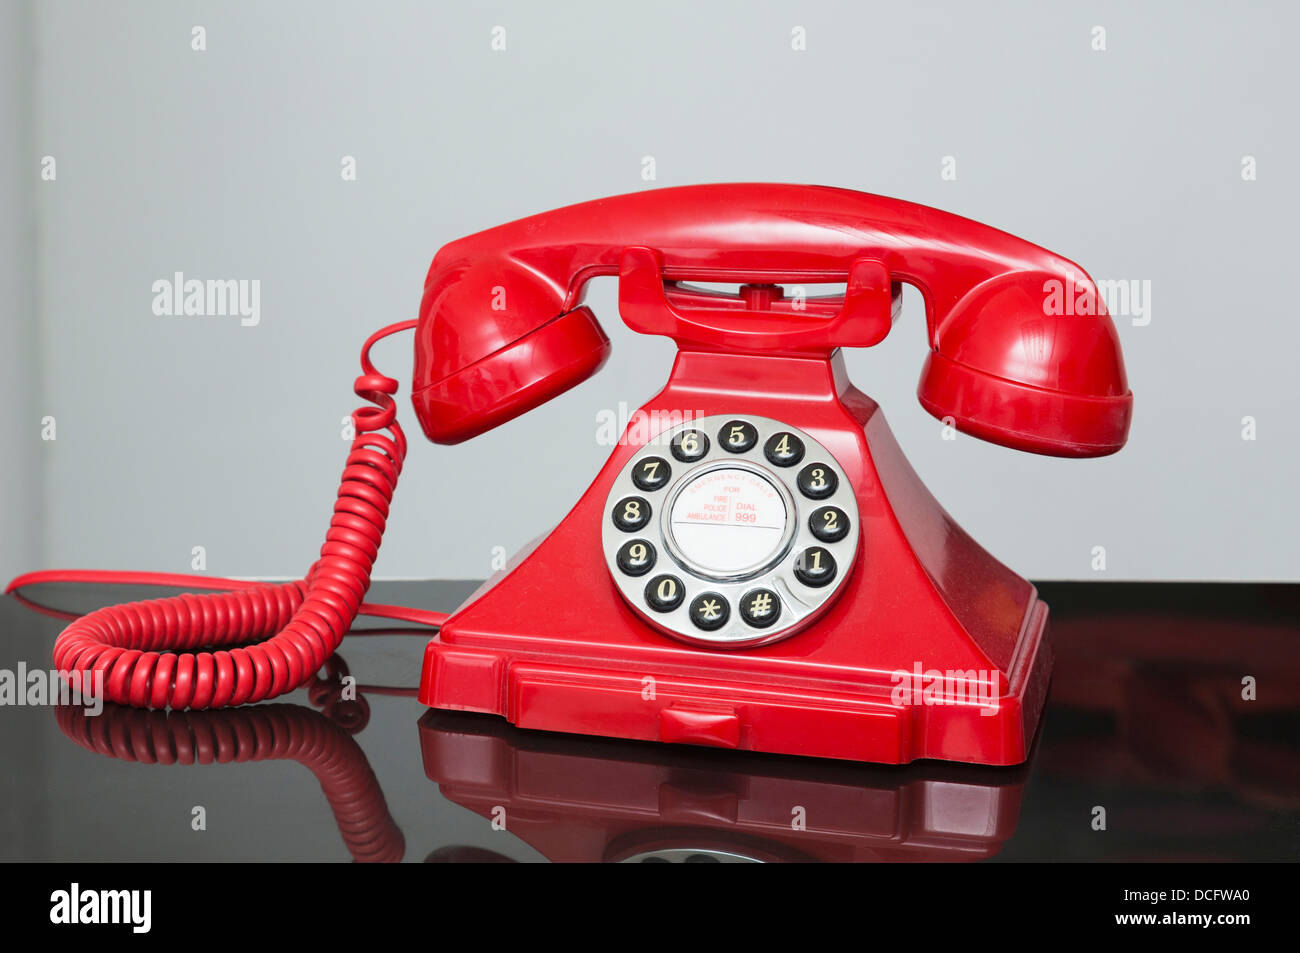 red retro / vintage style telephone of the 1930s-1940s era - Stock Image